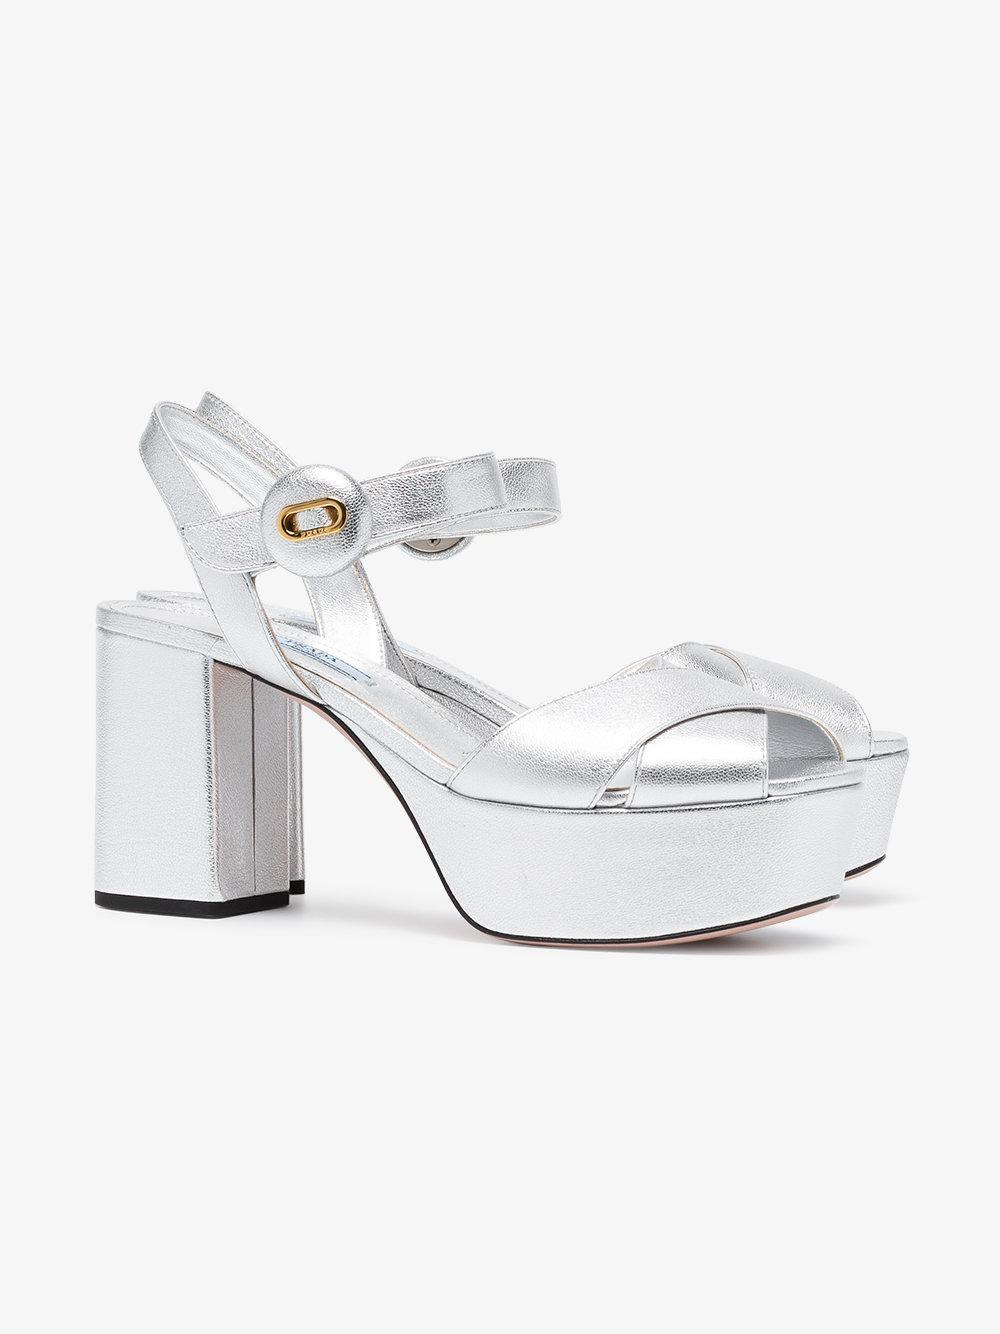 dc25655543e Lyst - Prada Silver 85 Leather Platform Sandals in Yellow